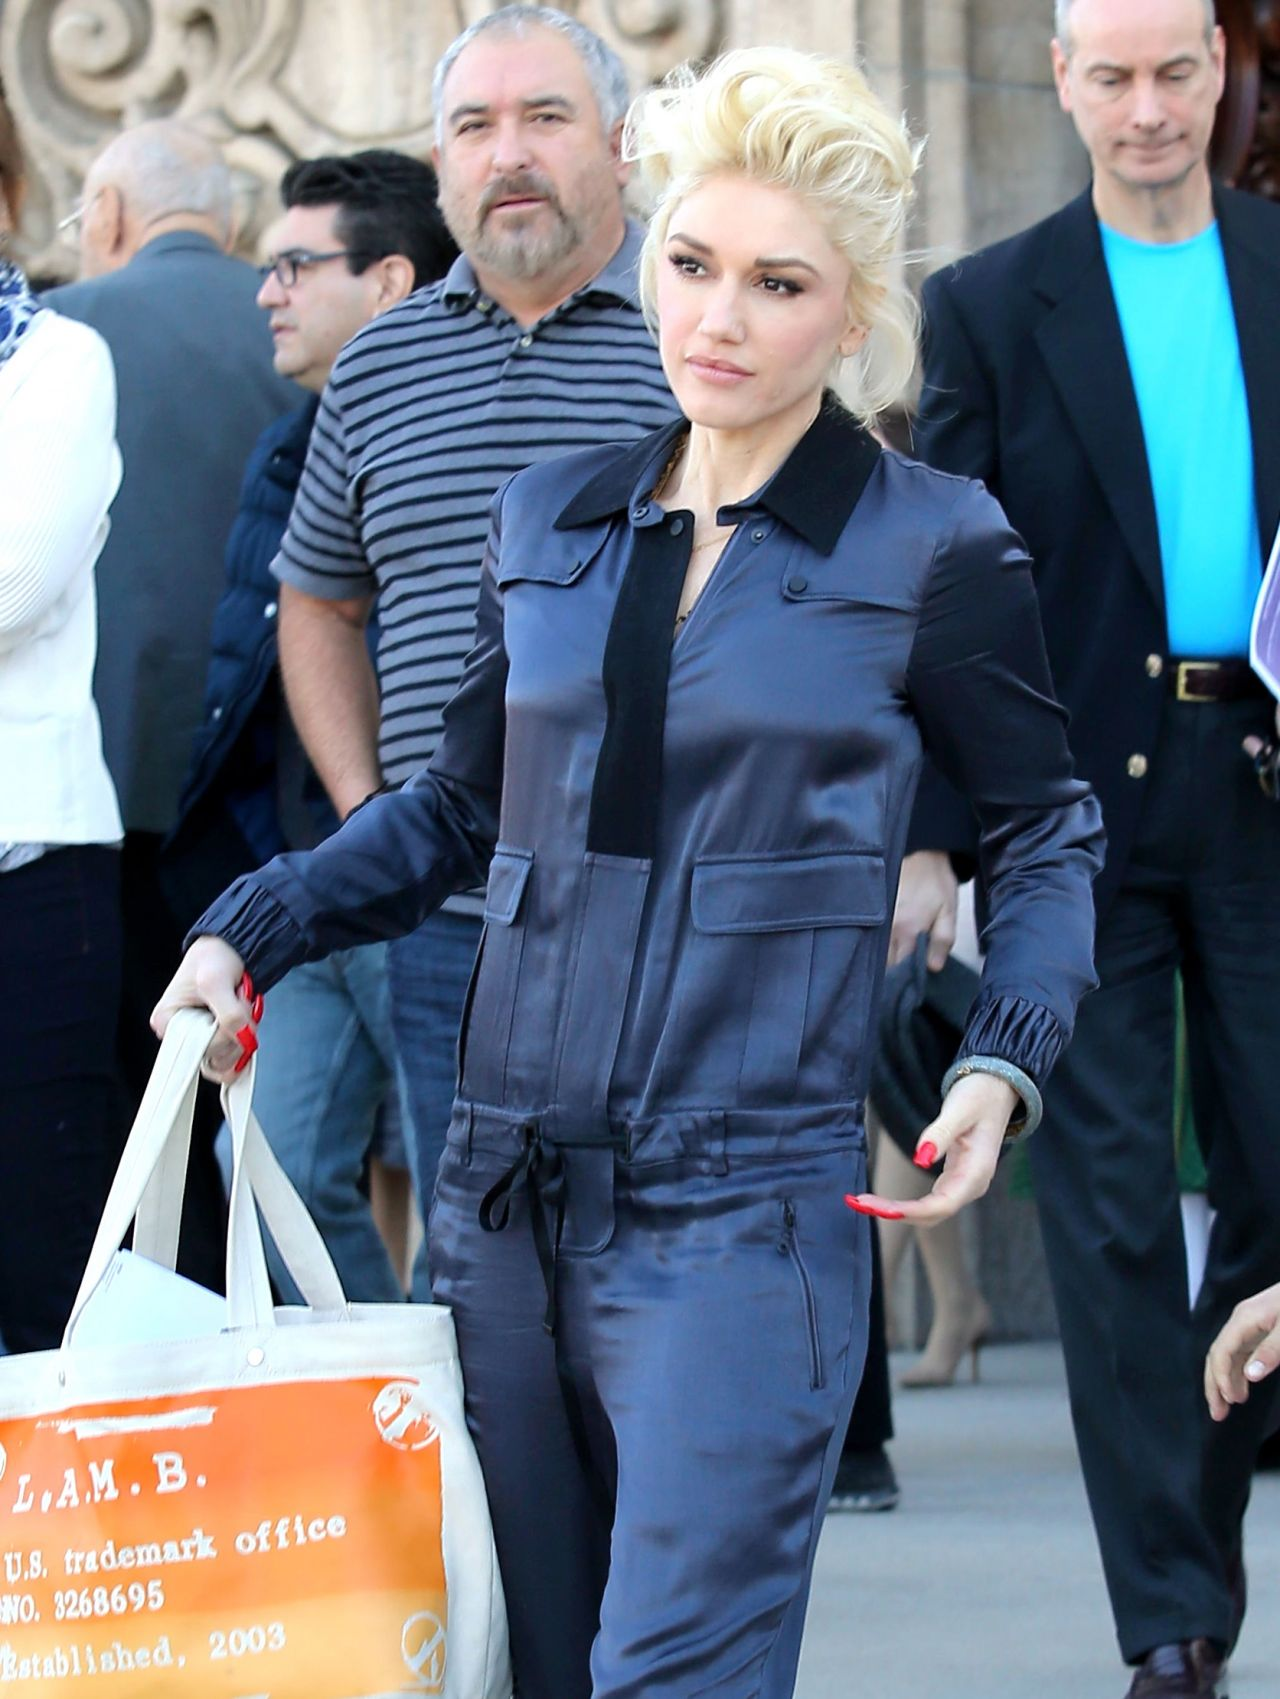 Gwen Stefani - Church Service in Los Angeles, CA, February 2016